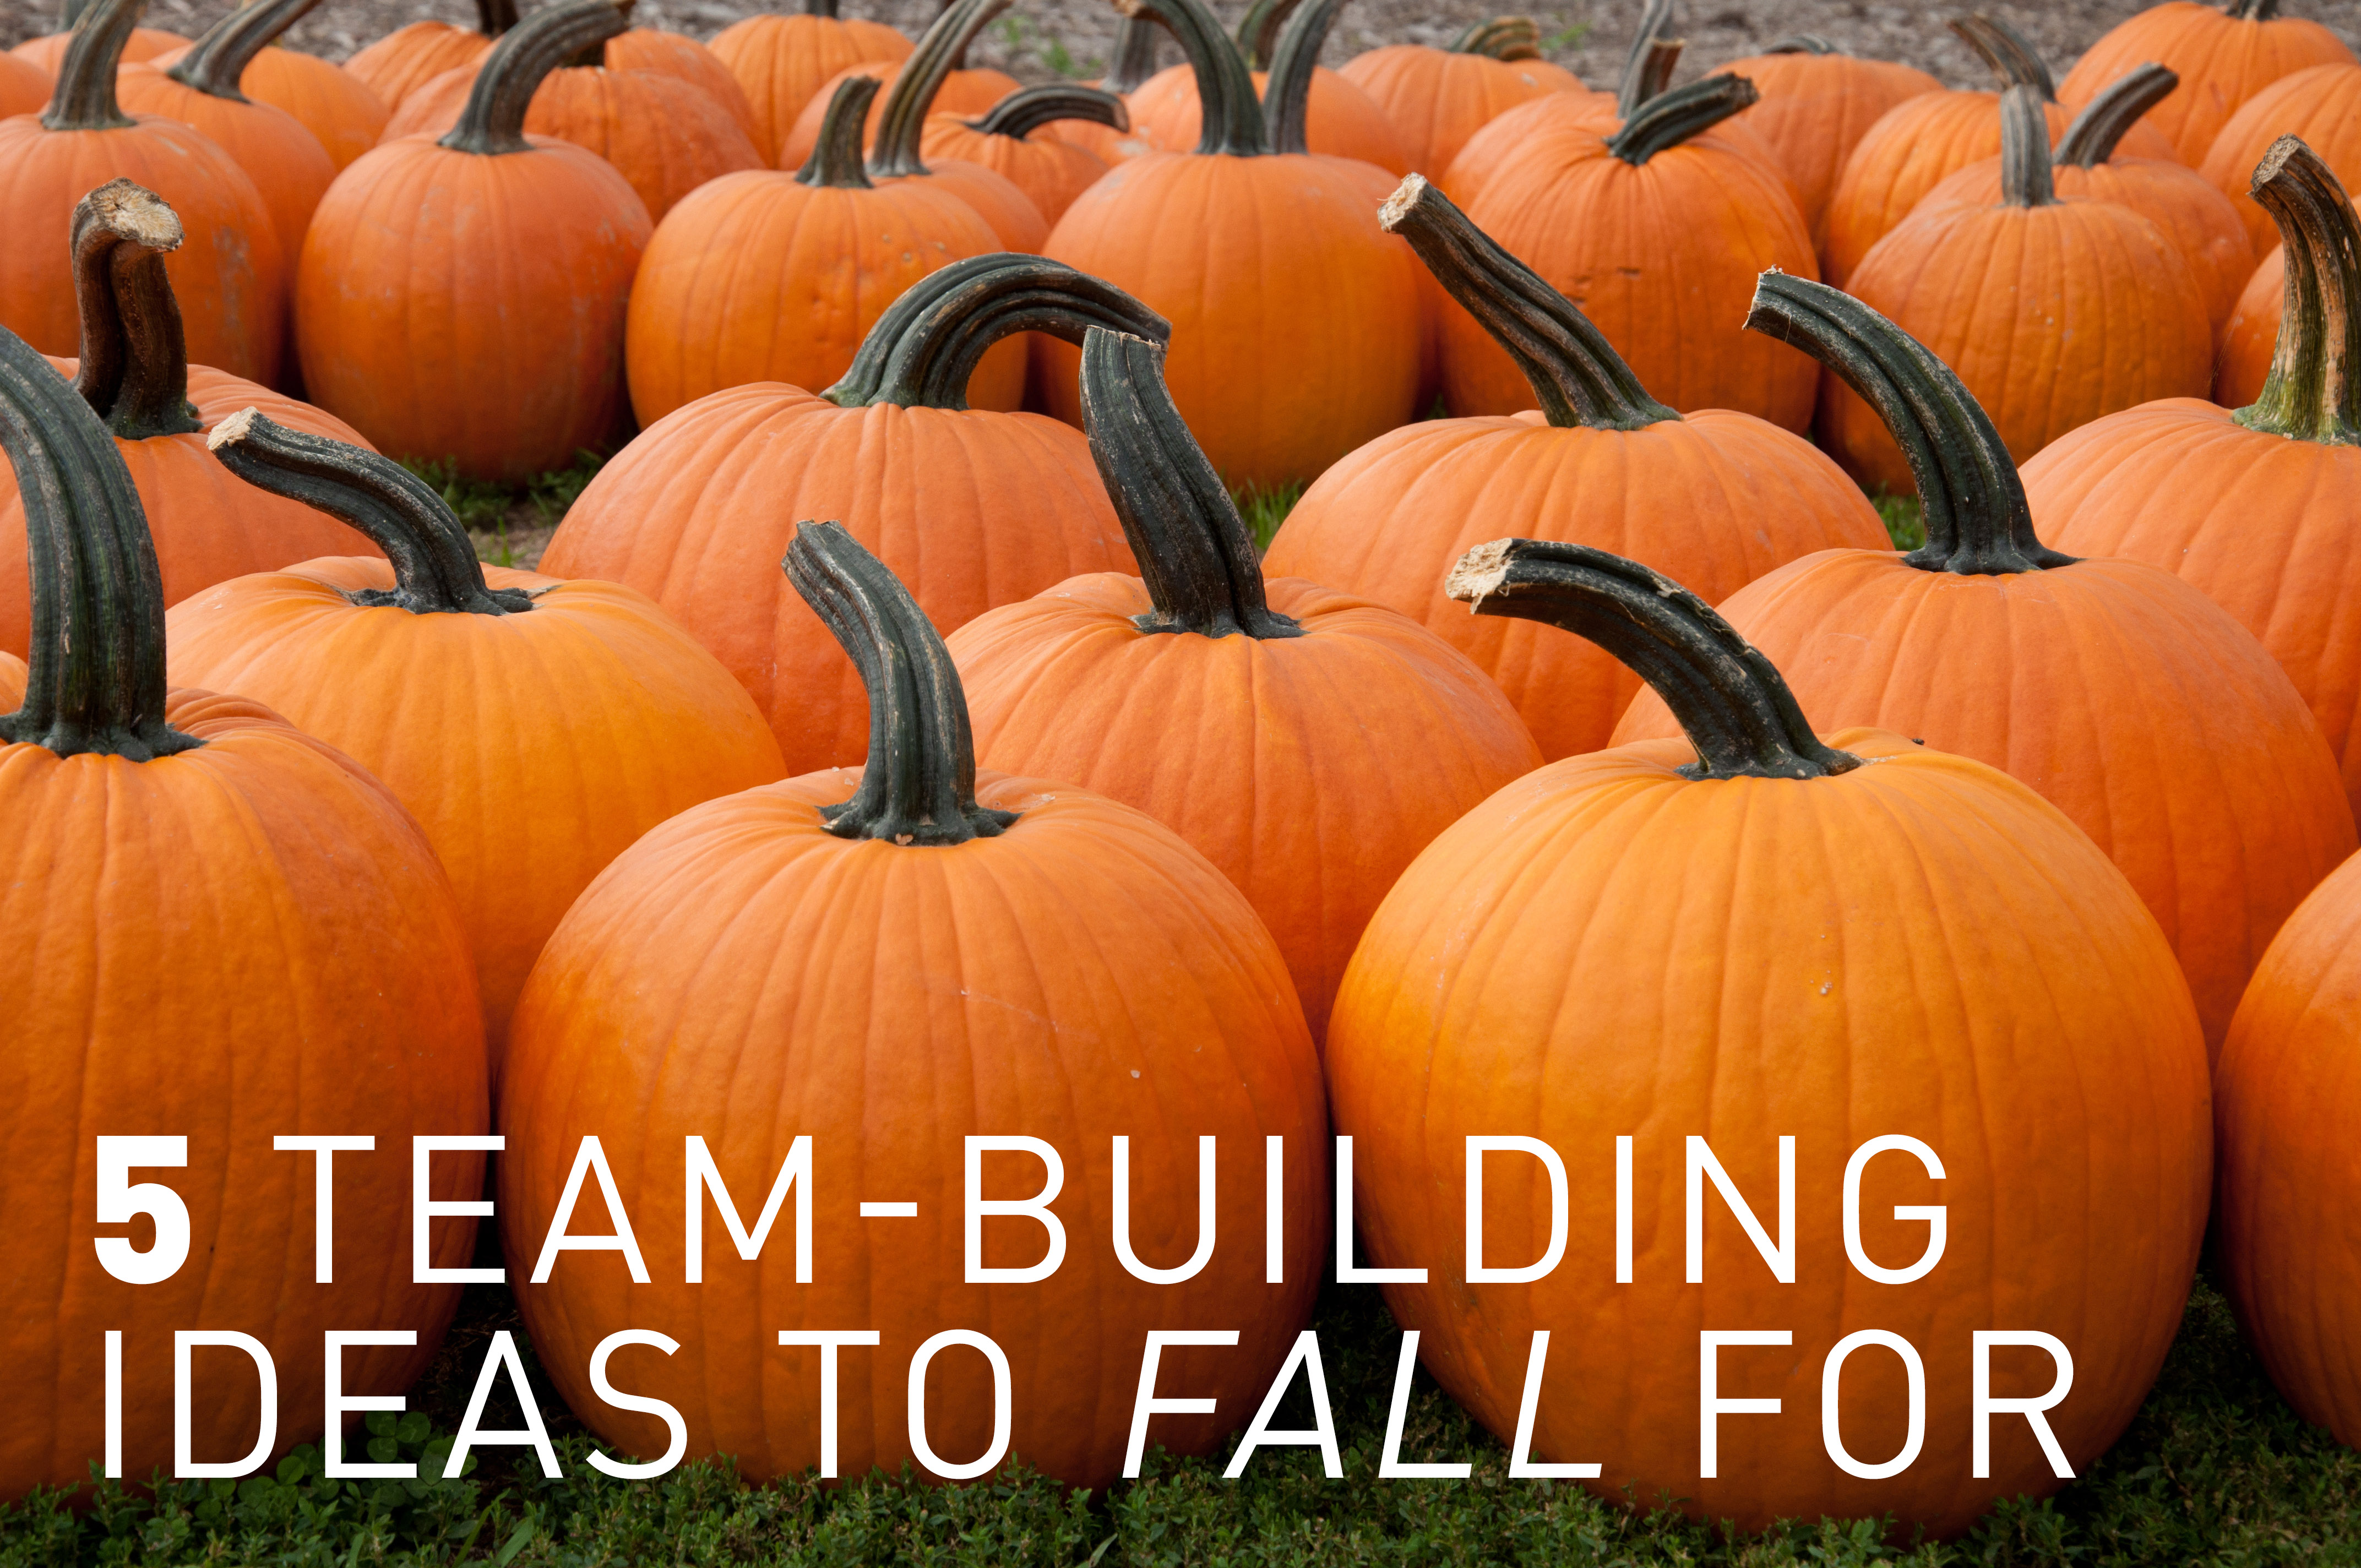 Team_Building_Ideas_to_Fall_for.jpg